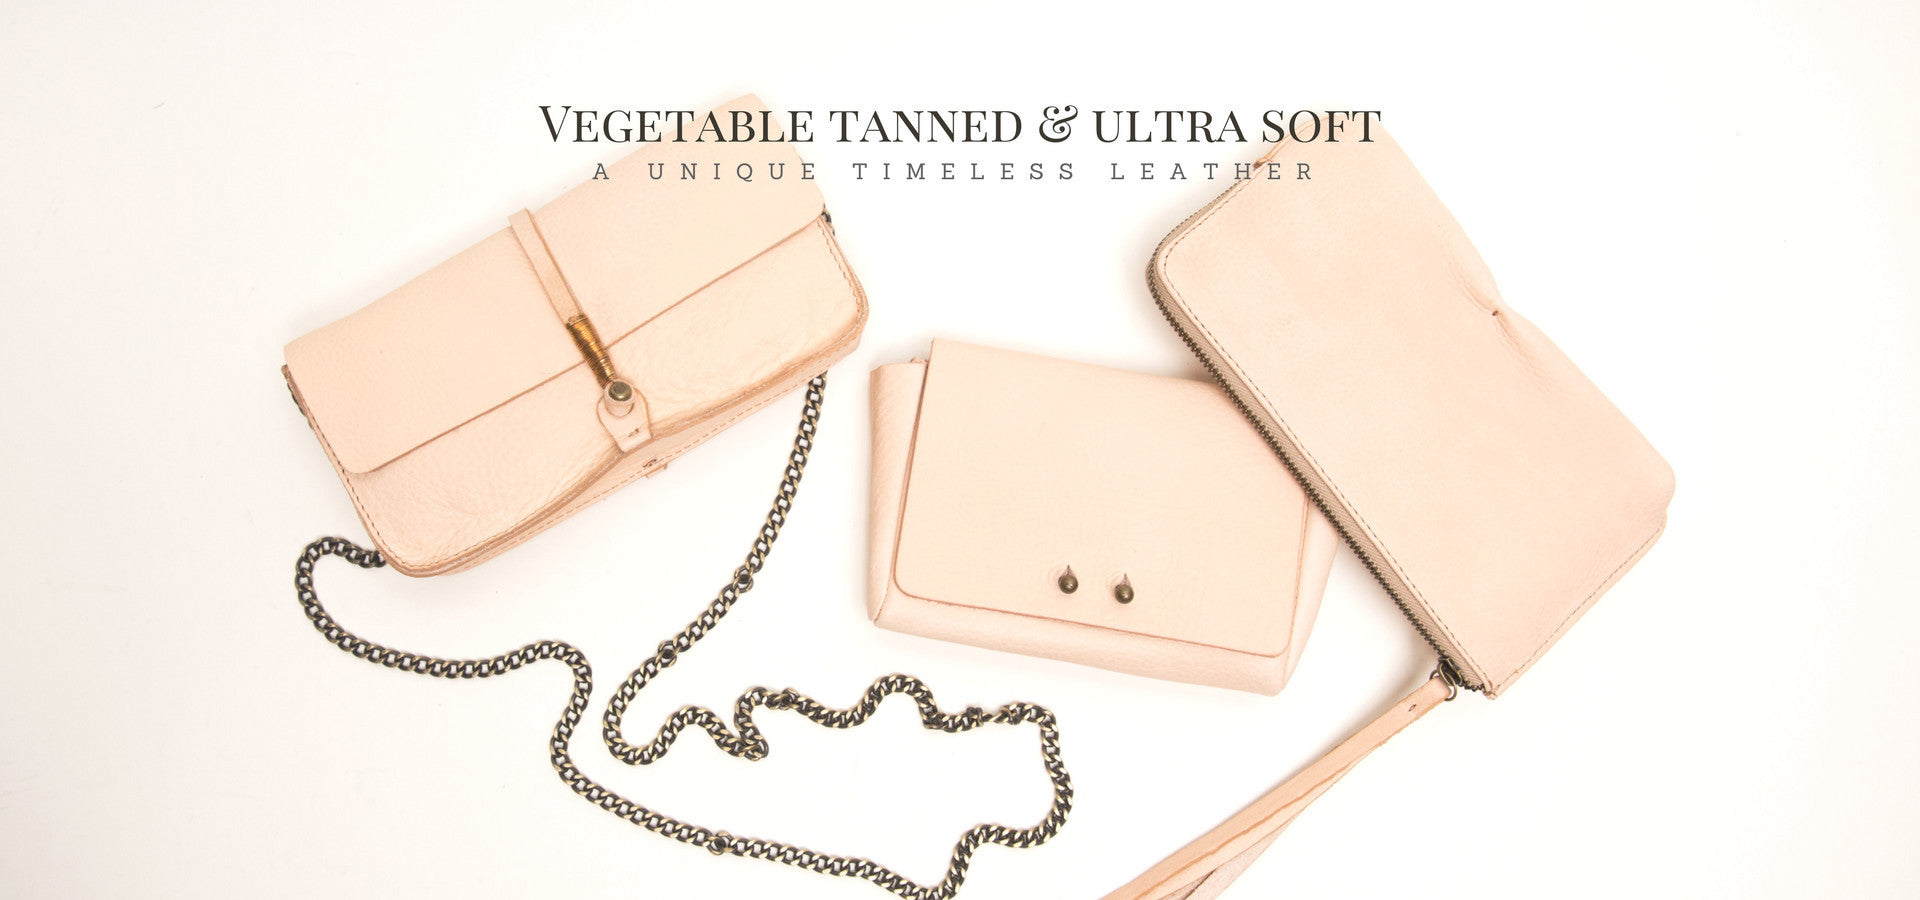 vegetable tanned and ultra soft